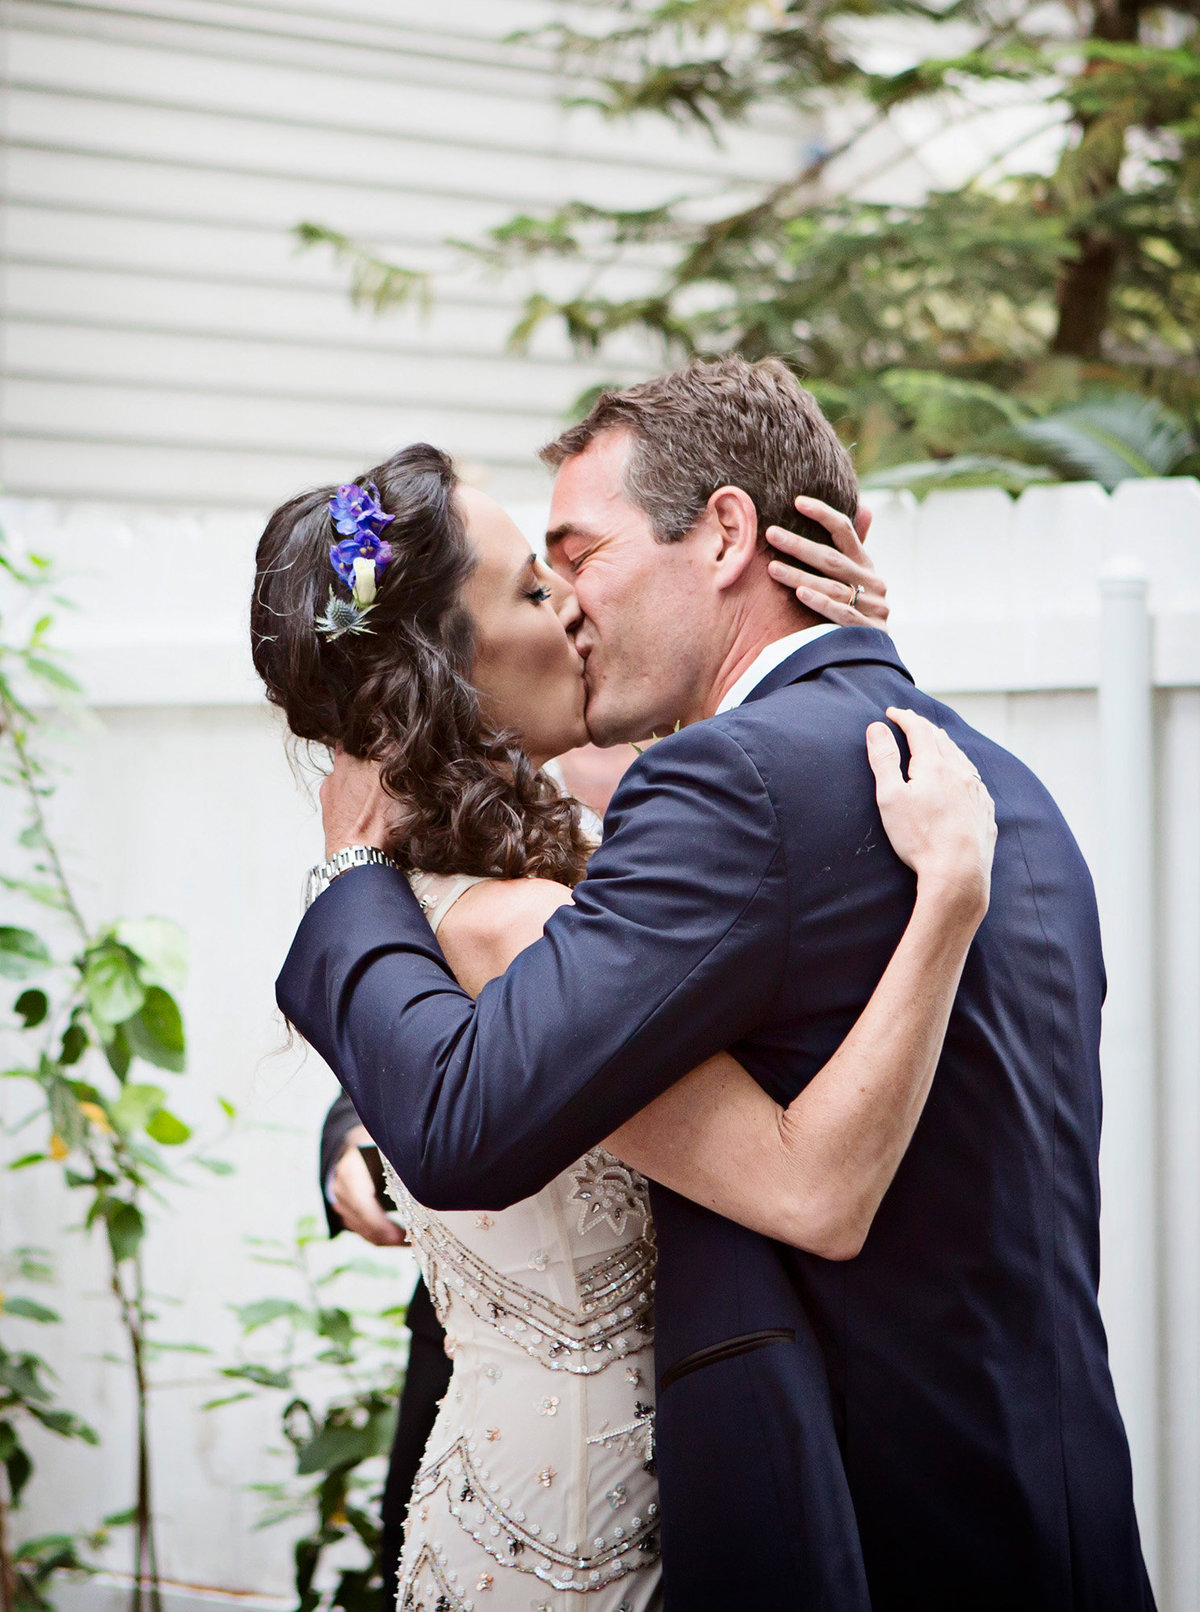 bride and groom kiss during wedding ceremony in The Garden District